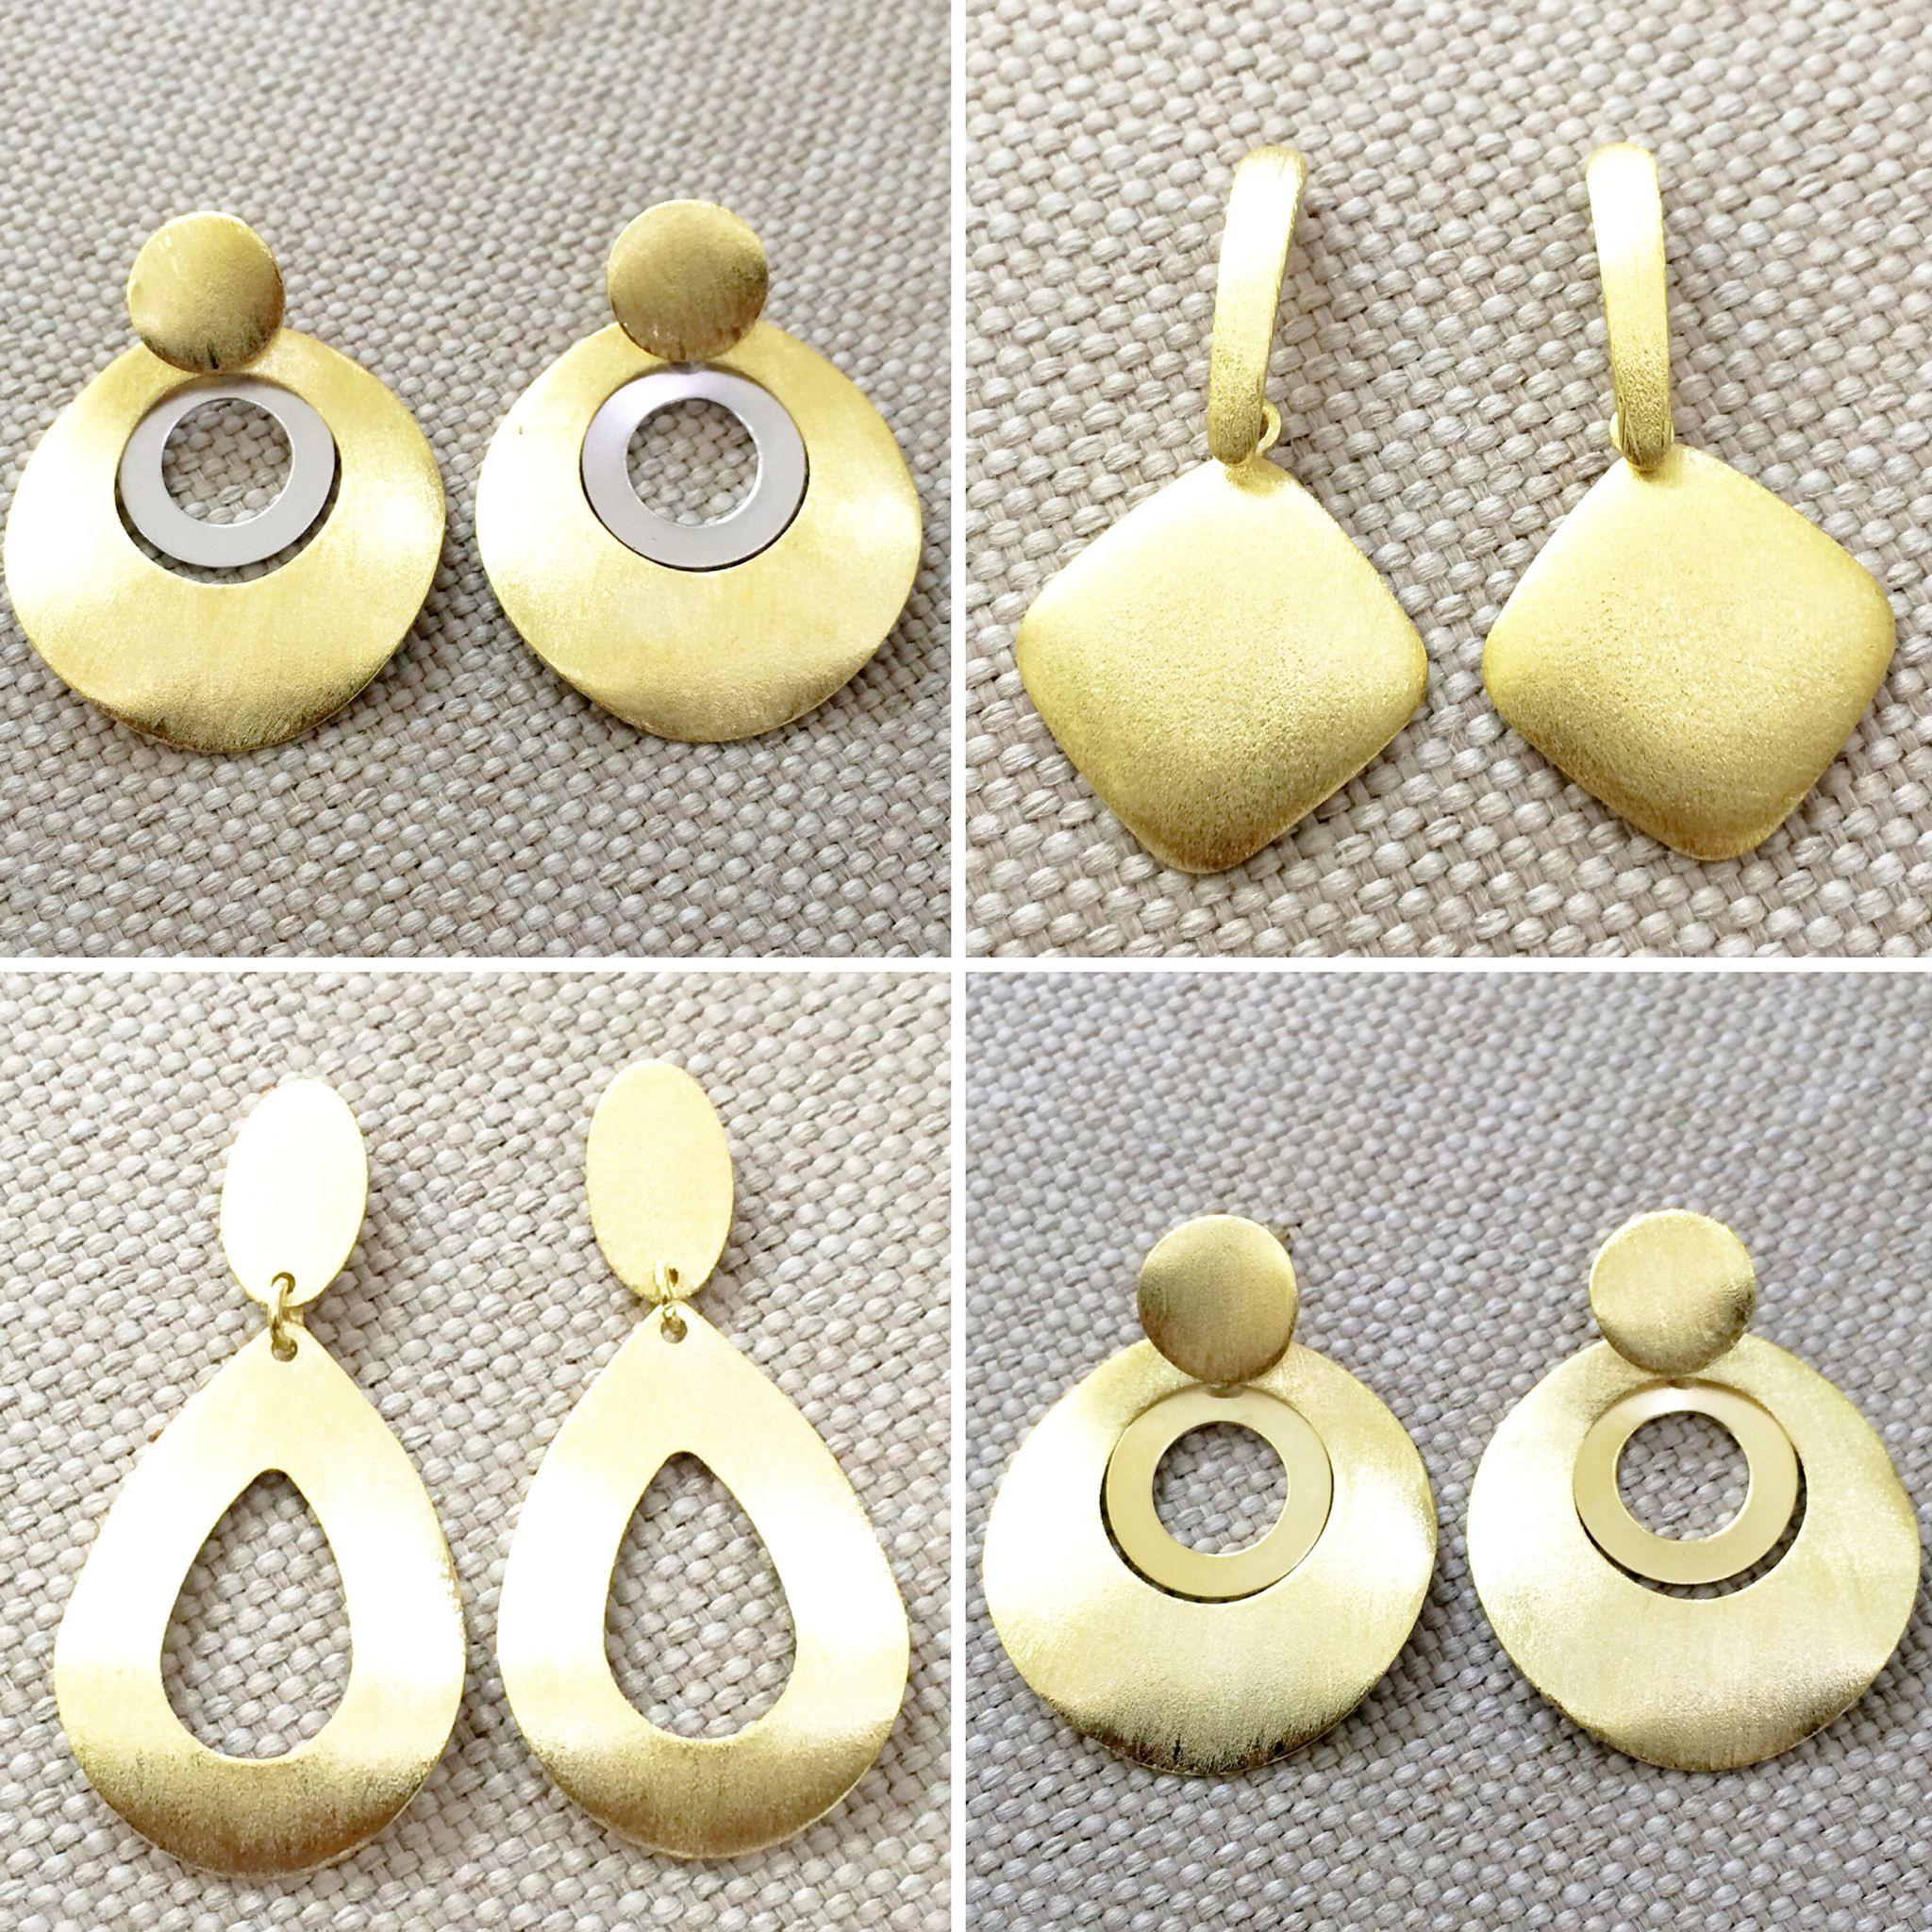 More amazing style of the Brazilian gold filled earrings